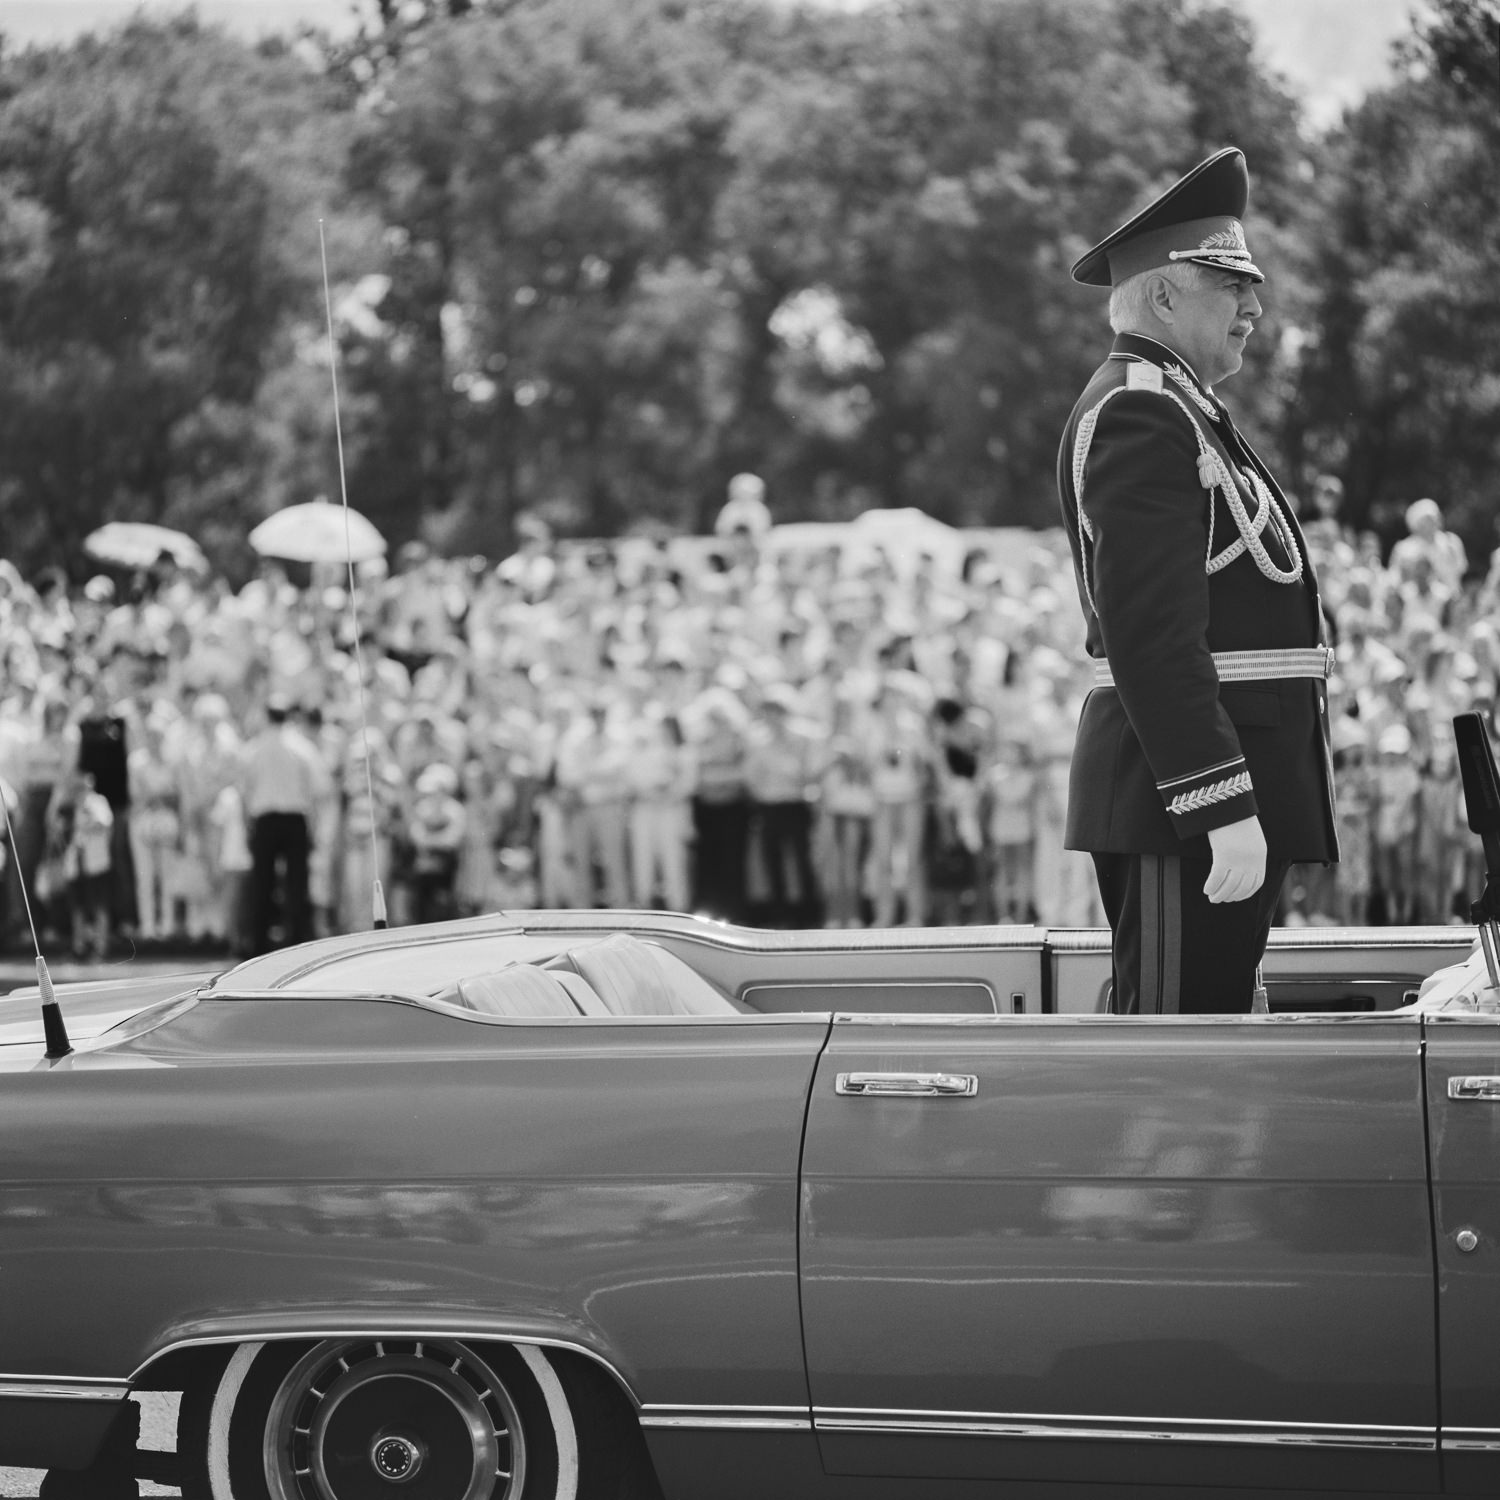 General of the Belarusian army in the car welcomes soldiers and participants of the victory procession, black-and-white film street photo